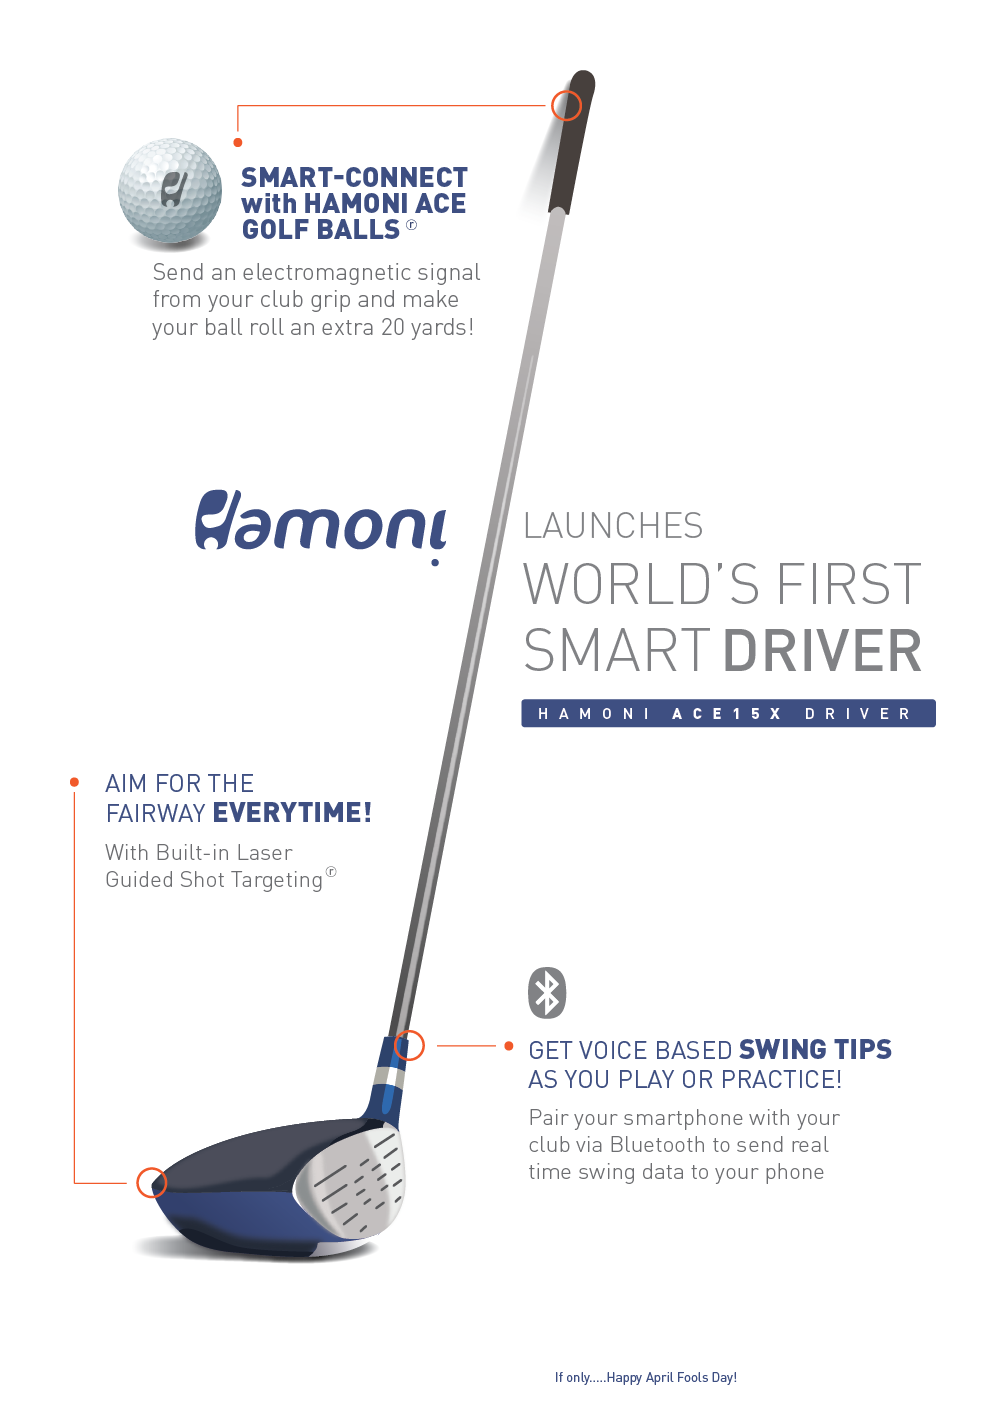 Hamoni Golf Launches World's First Smart Driver!